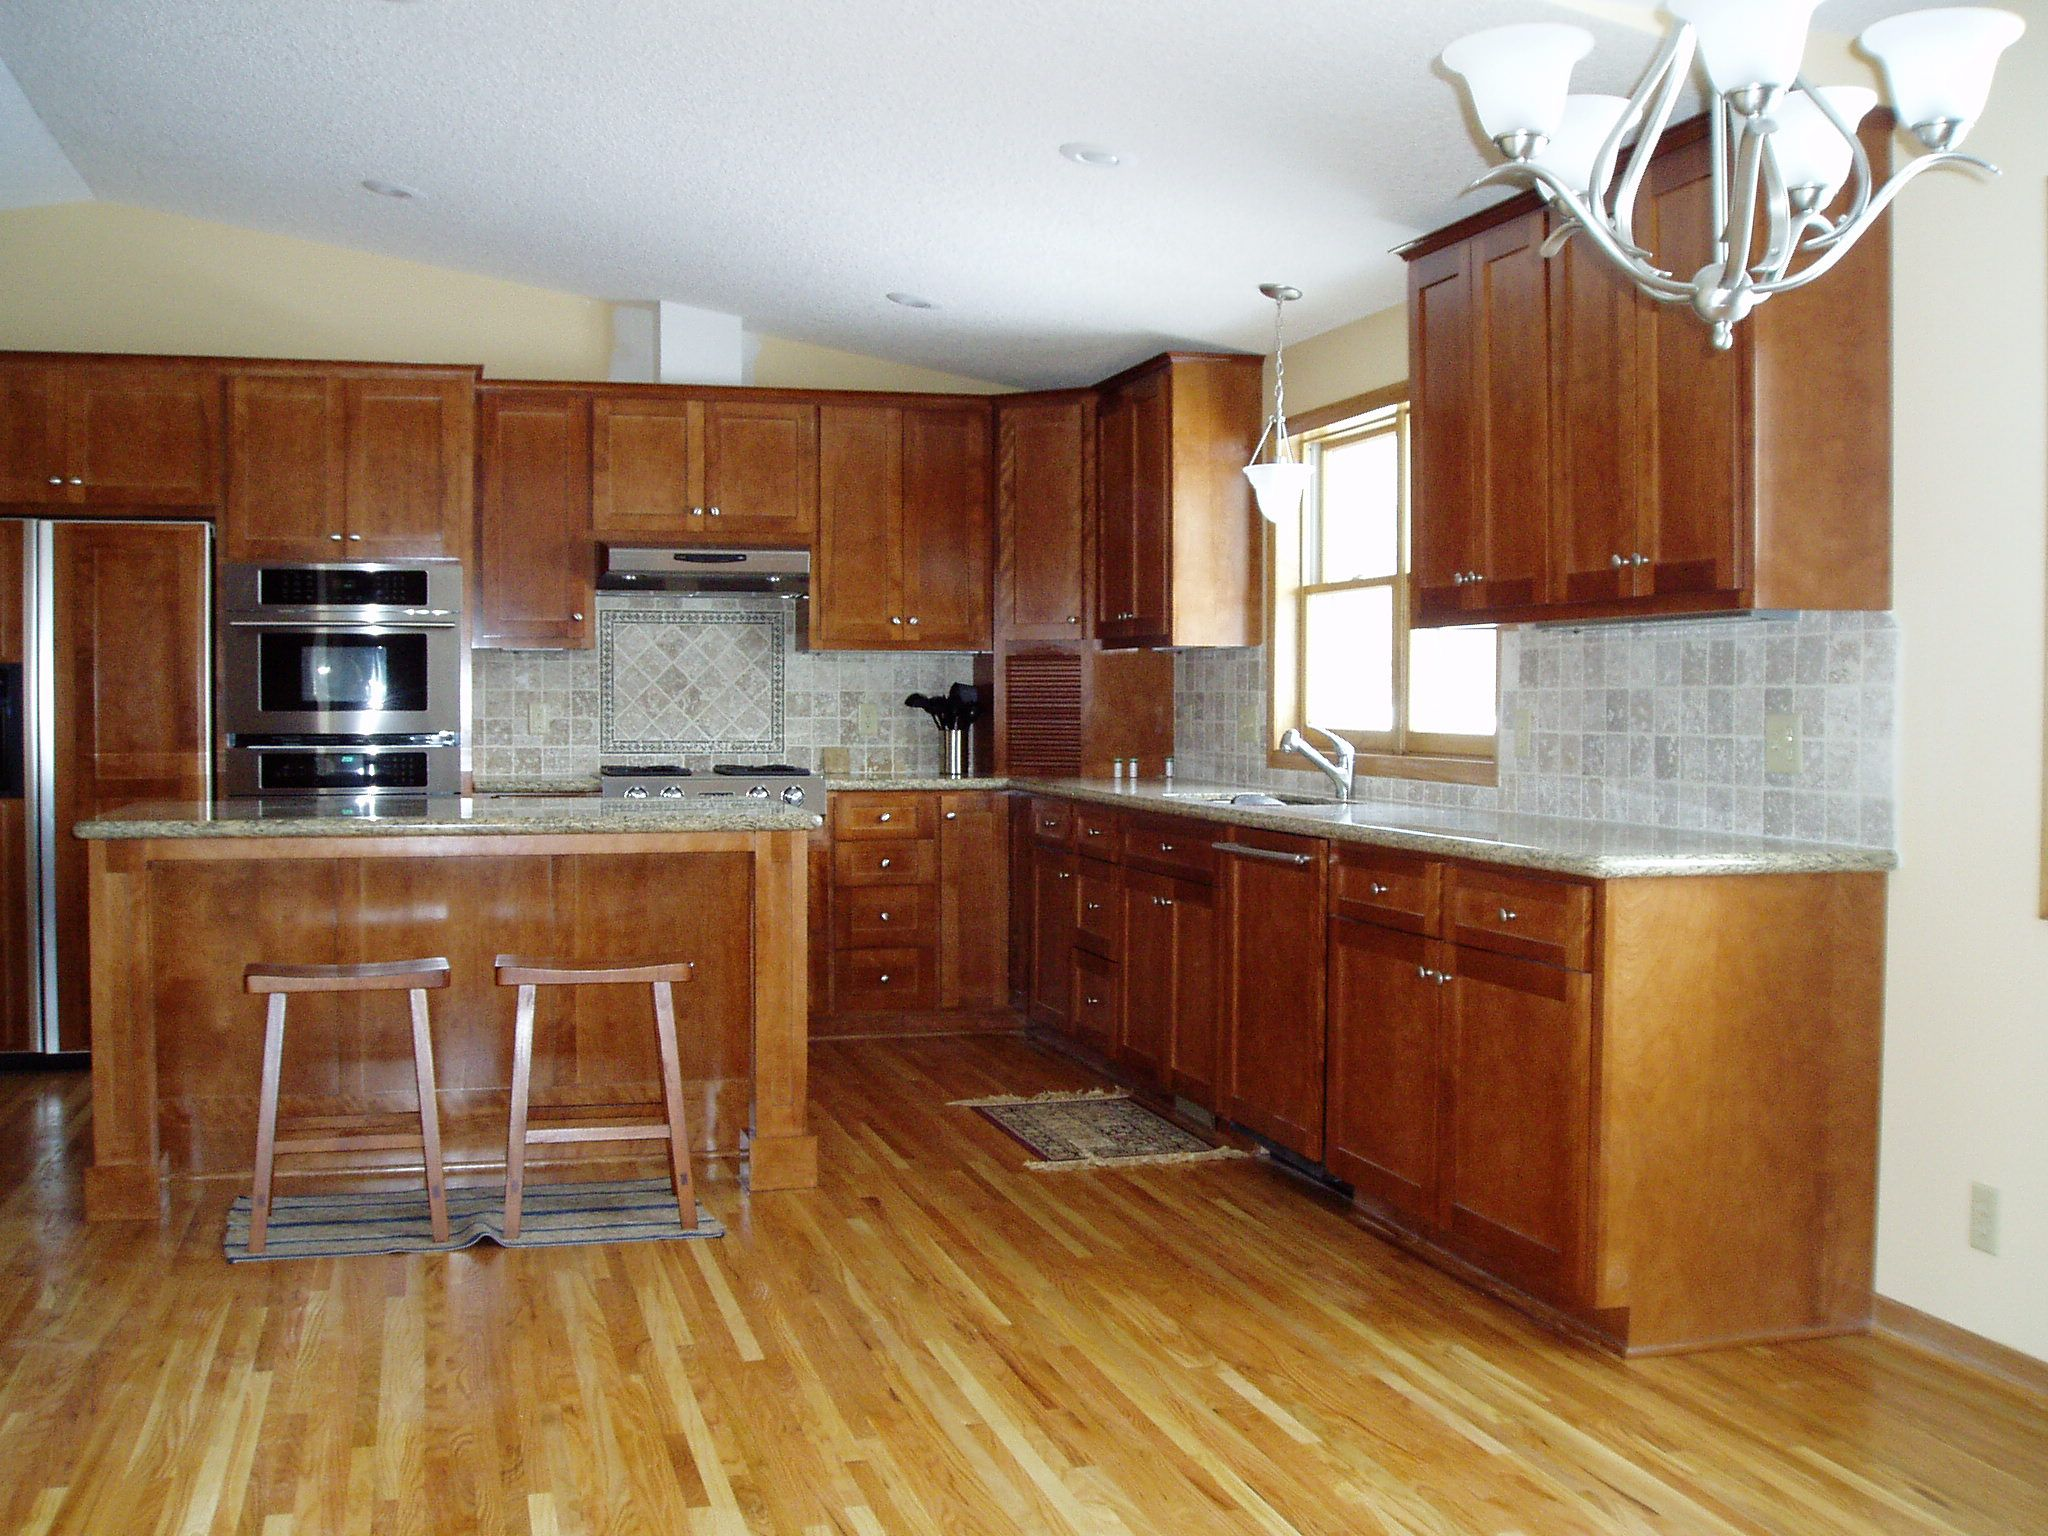 honey oak cabinets what color floor kitchen floor cabinets wood flooring that goes well with honey oak cabinets